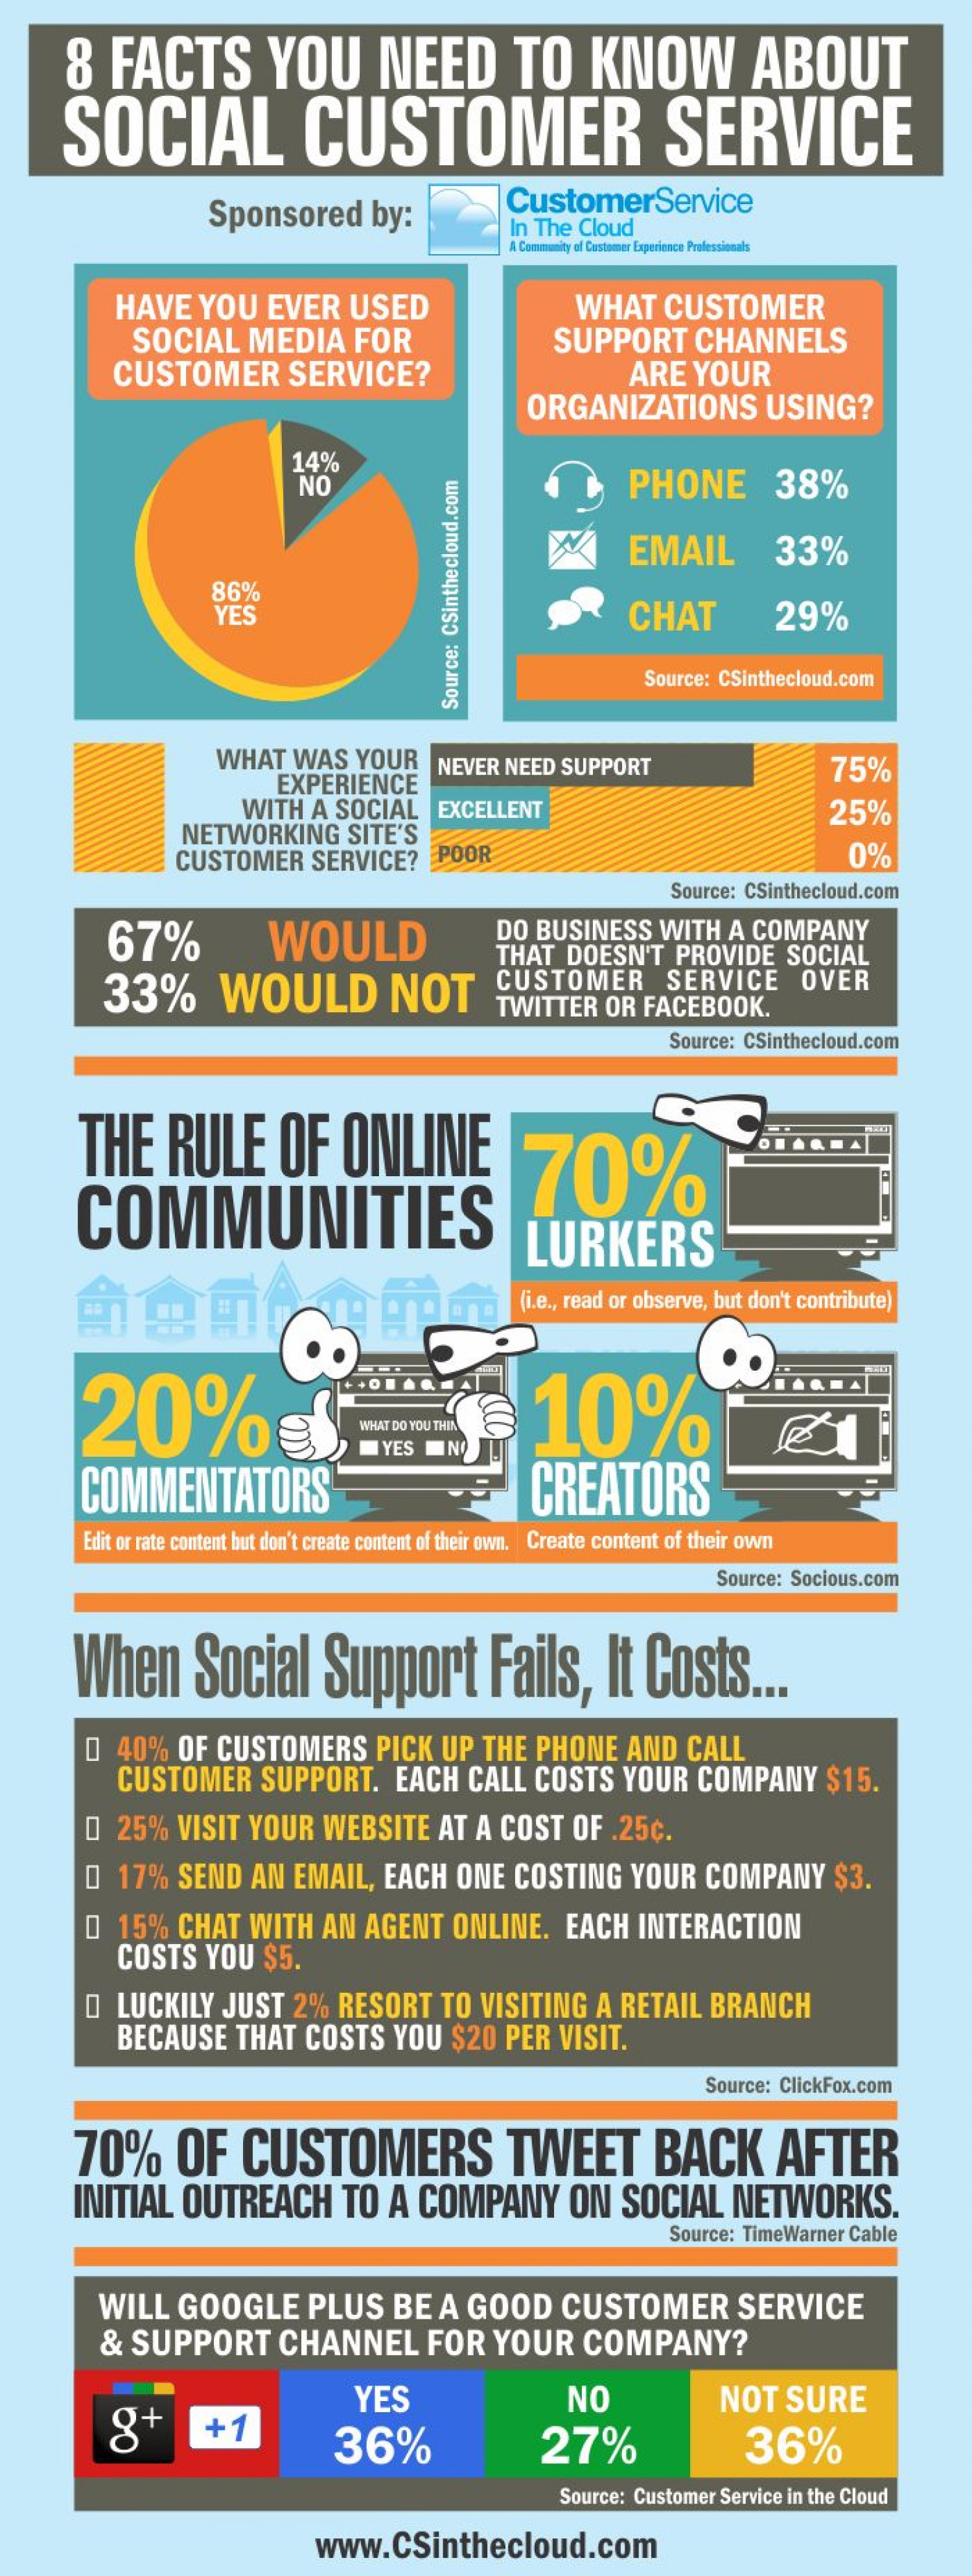 8 Facts You Didn't Know About Social Customer Service Infographic